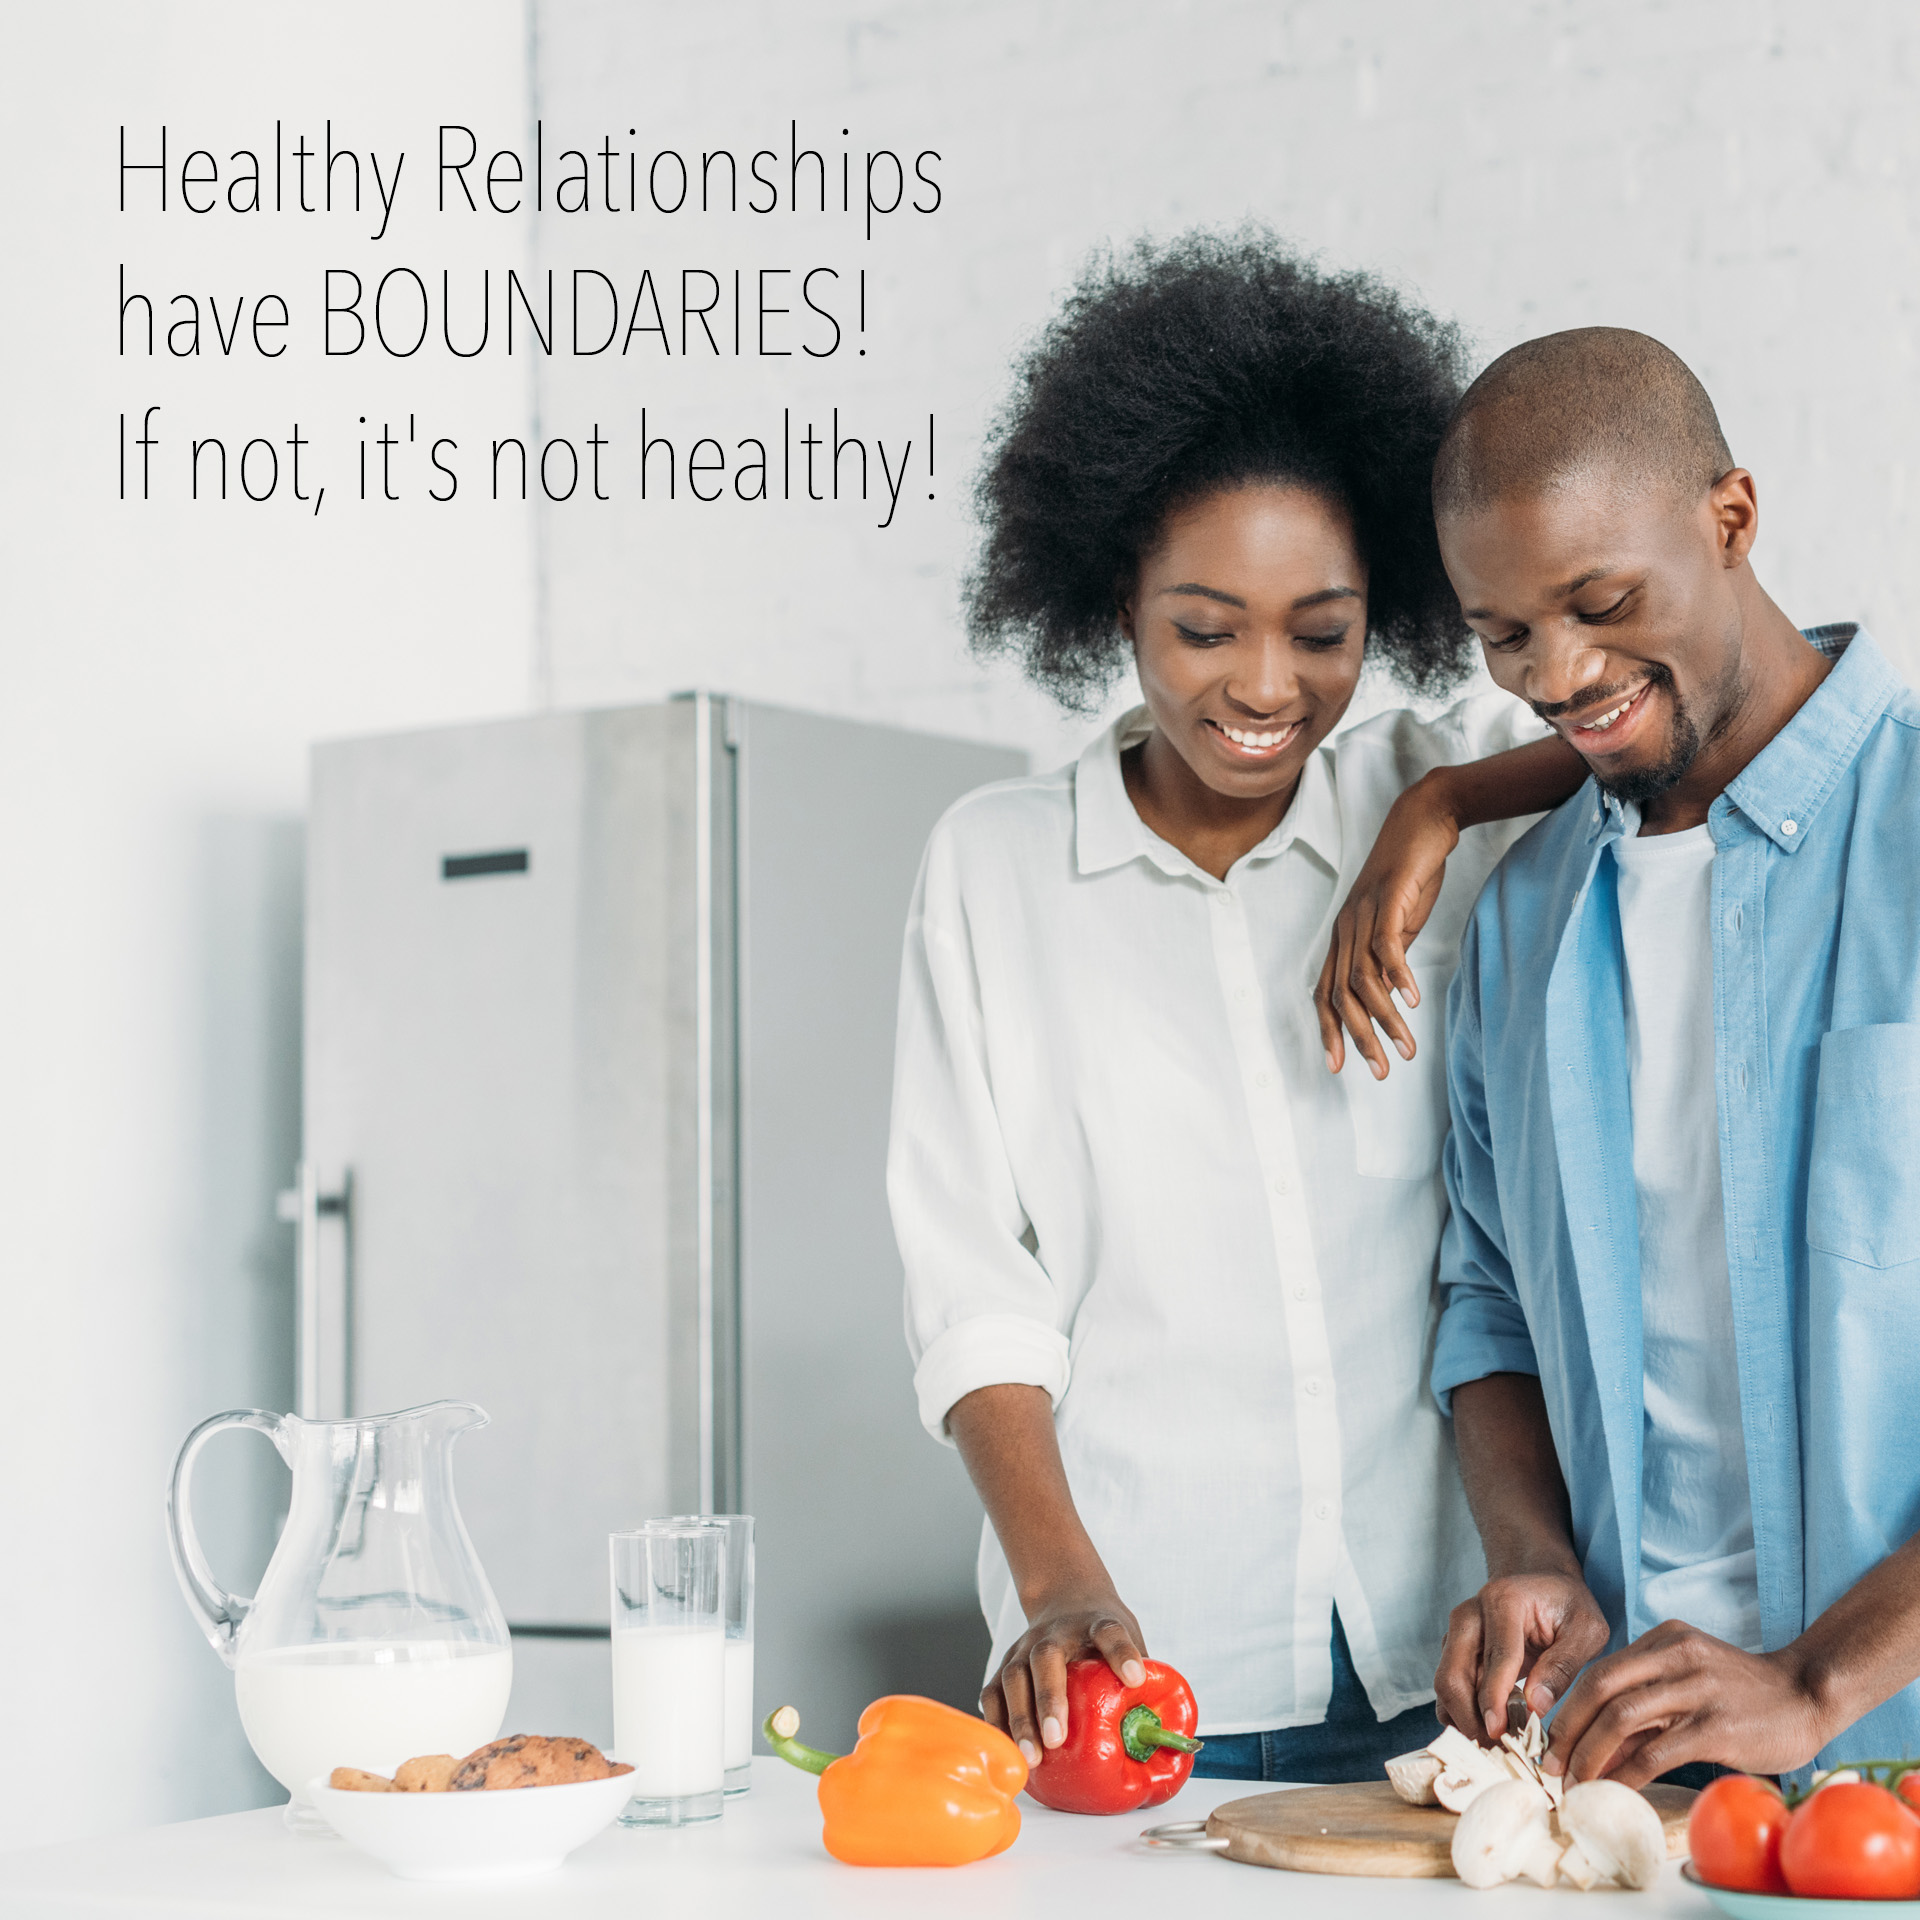 Healthy Relationships have BOUNDARIES! If not, it's not healthy!